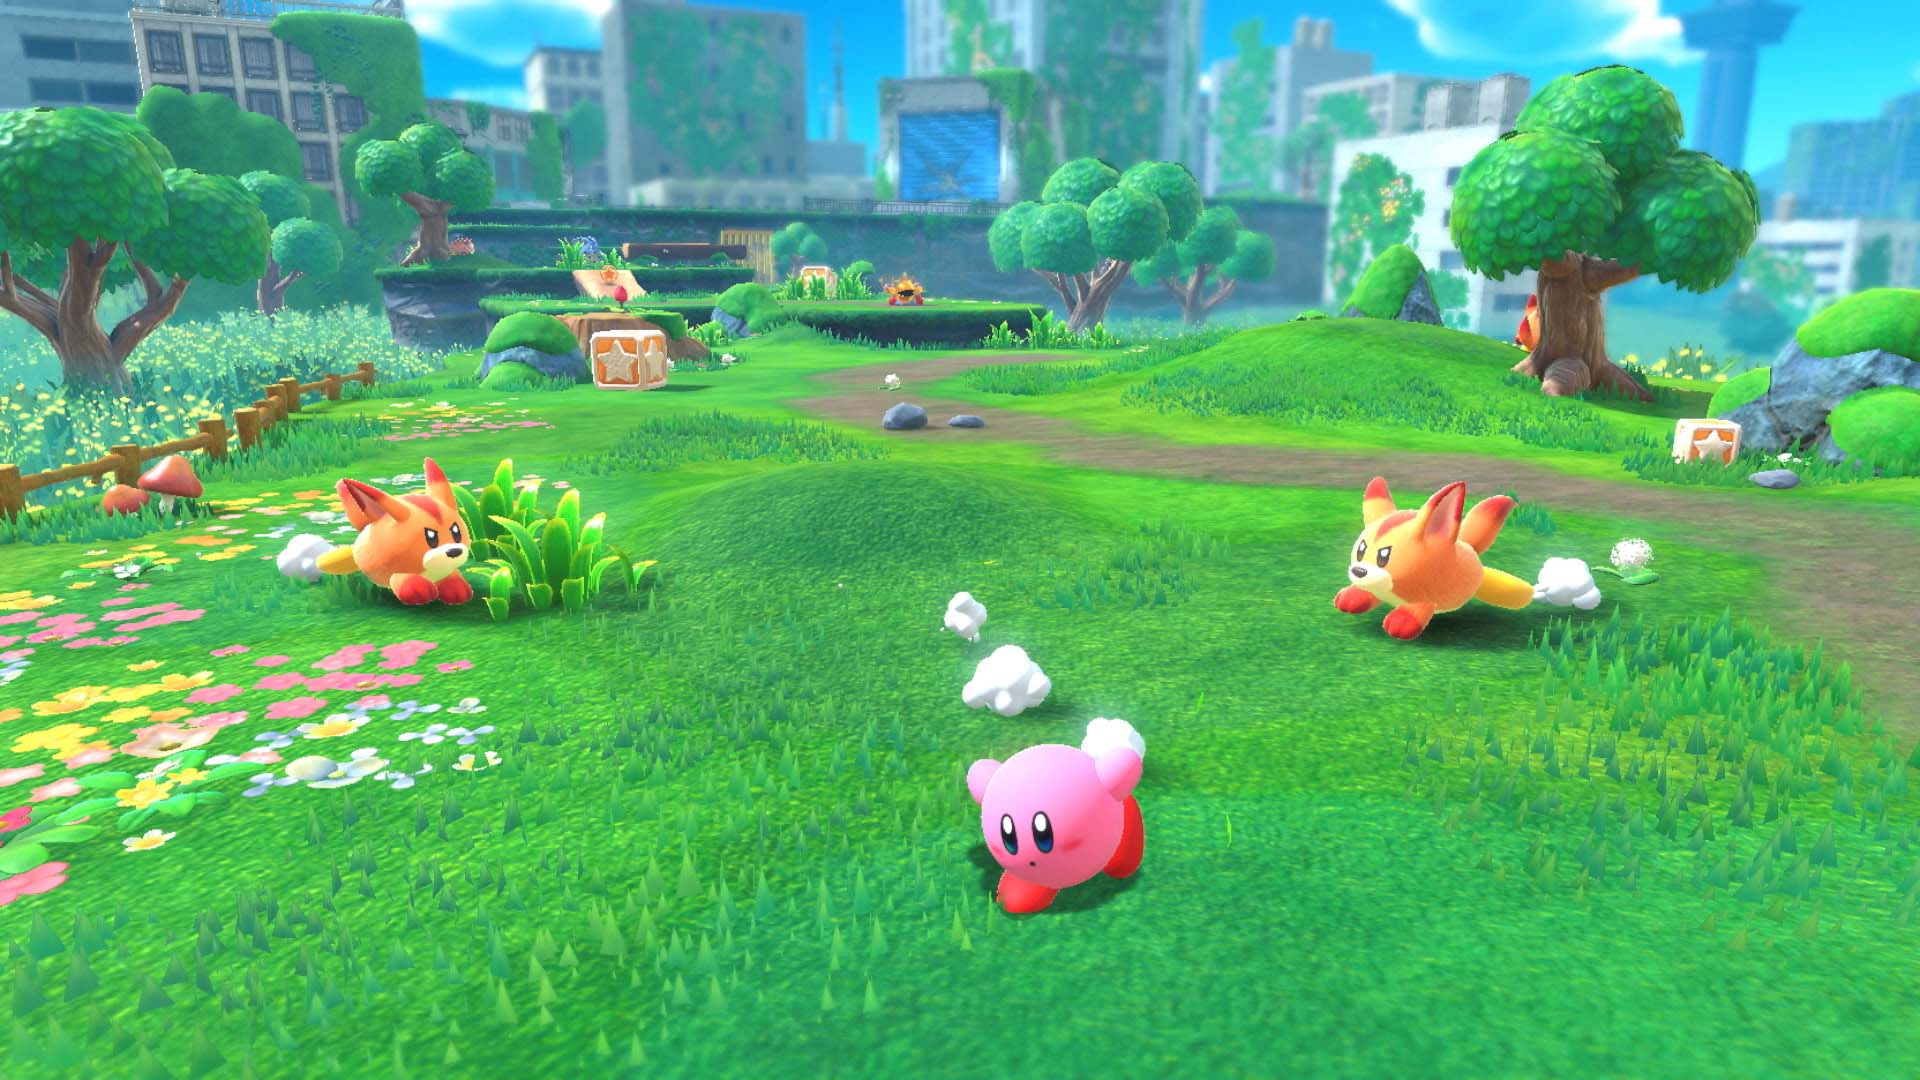 Kirby-and-the-Forgotten-Land-Cultura-Geek-3